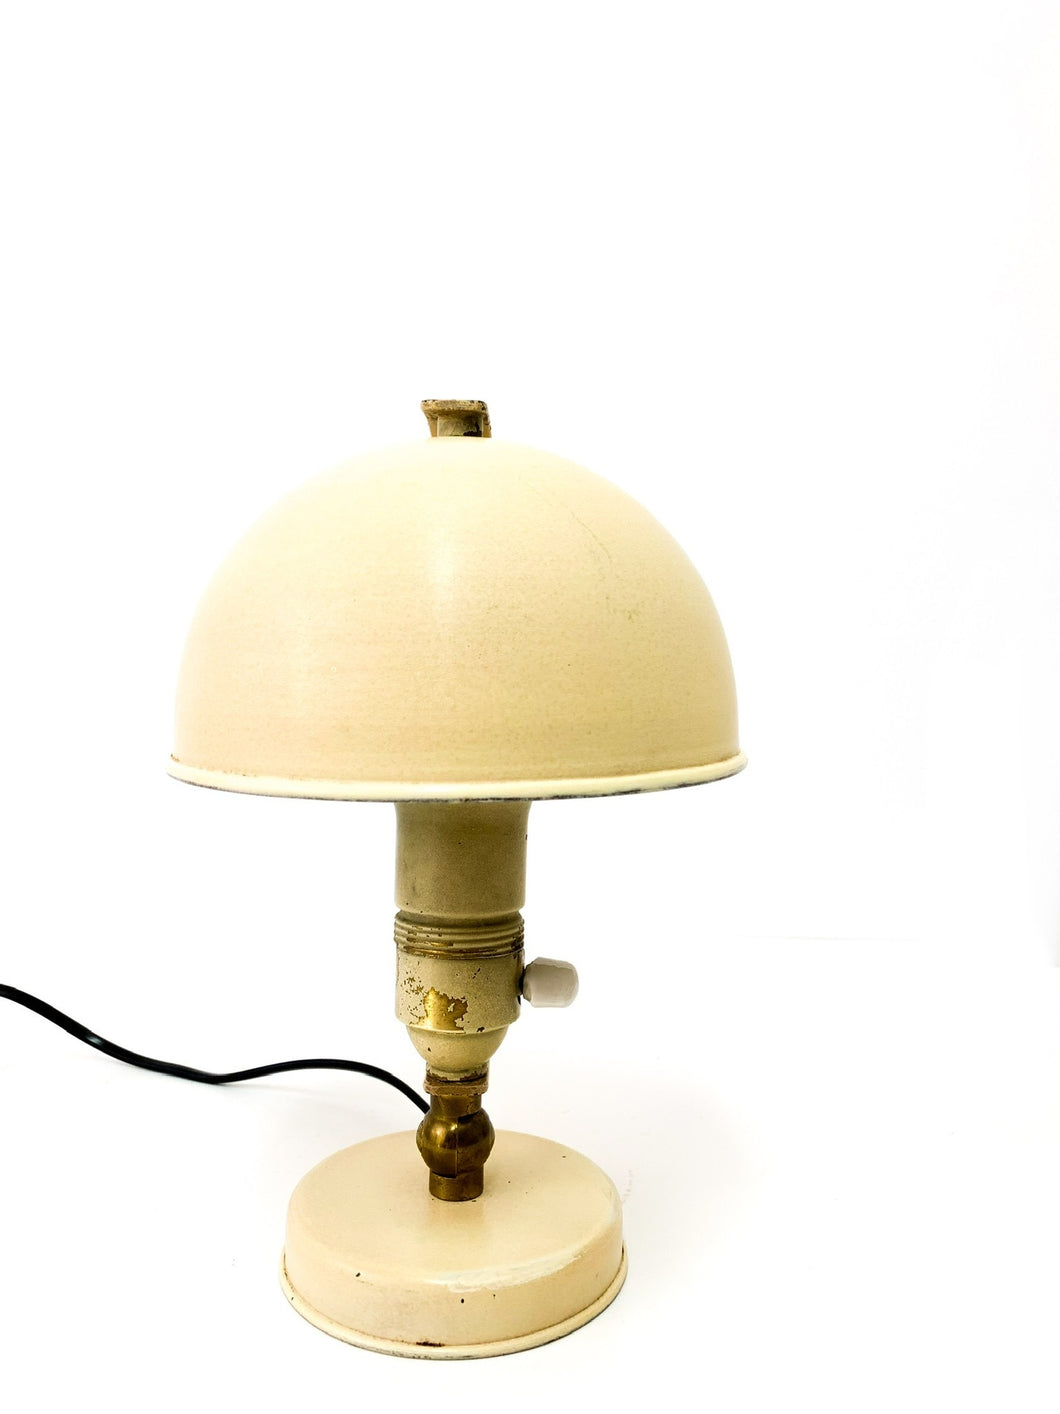 TABLE LAMP BY HARALD NOTINI FOR BÖHLMARKS STOCKHOLM